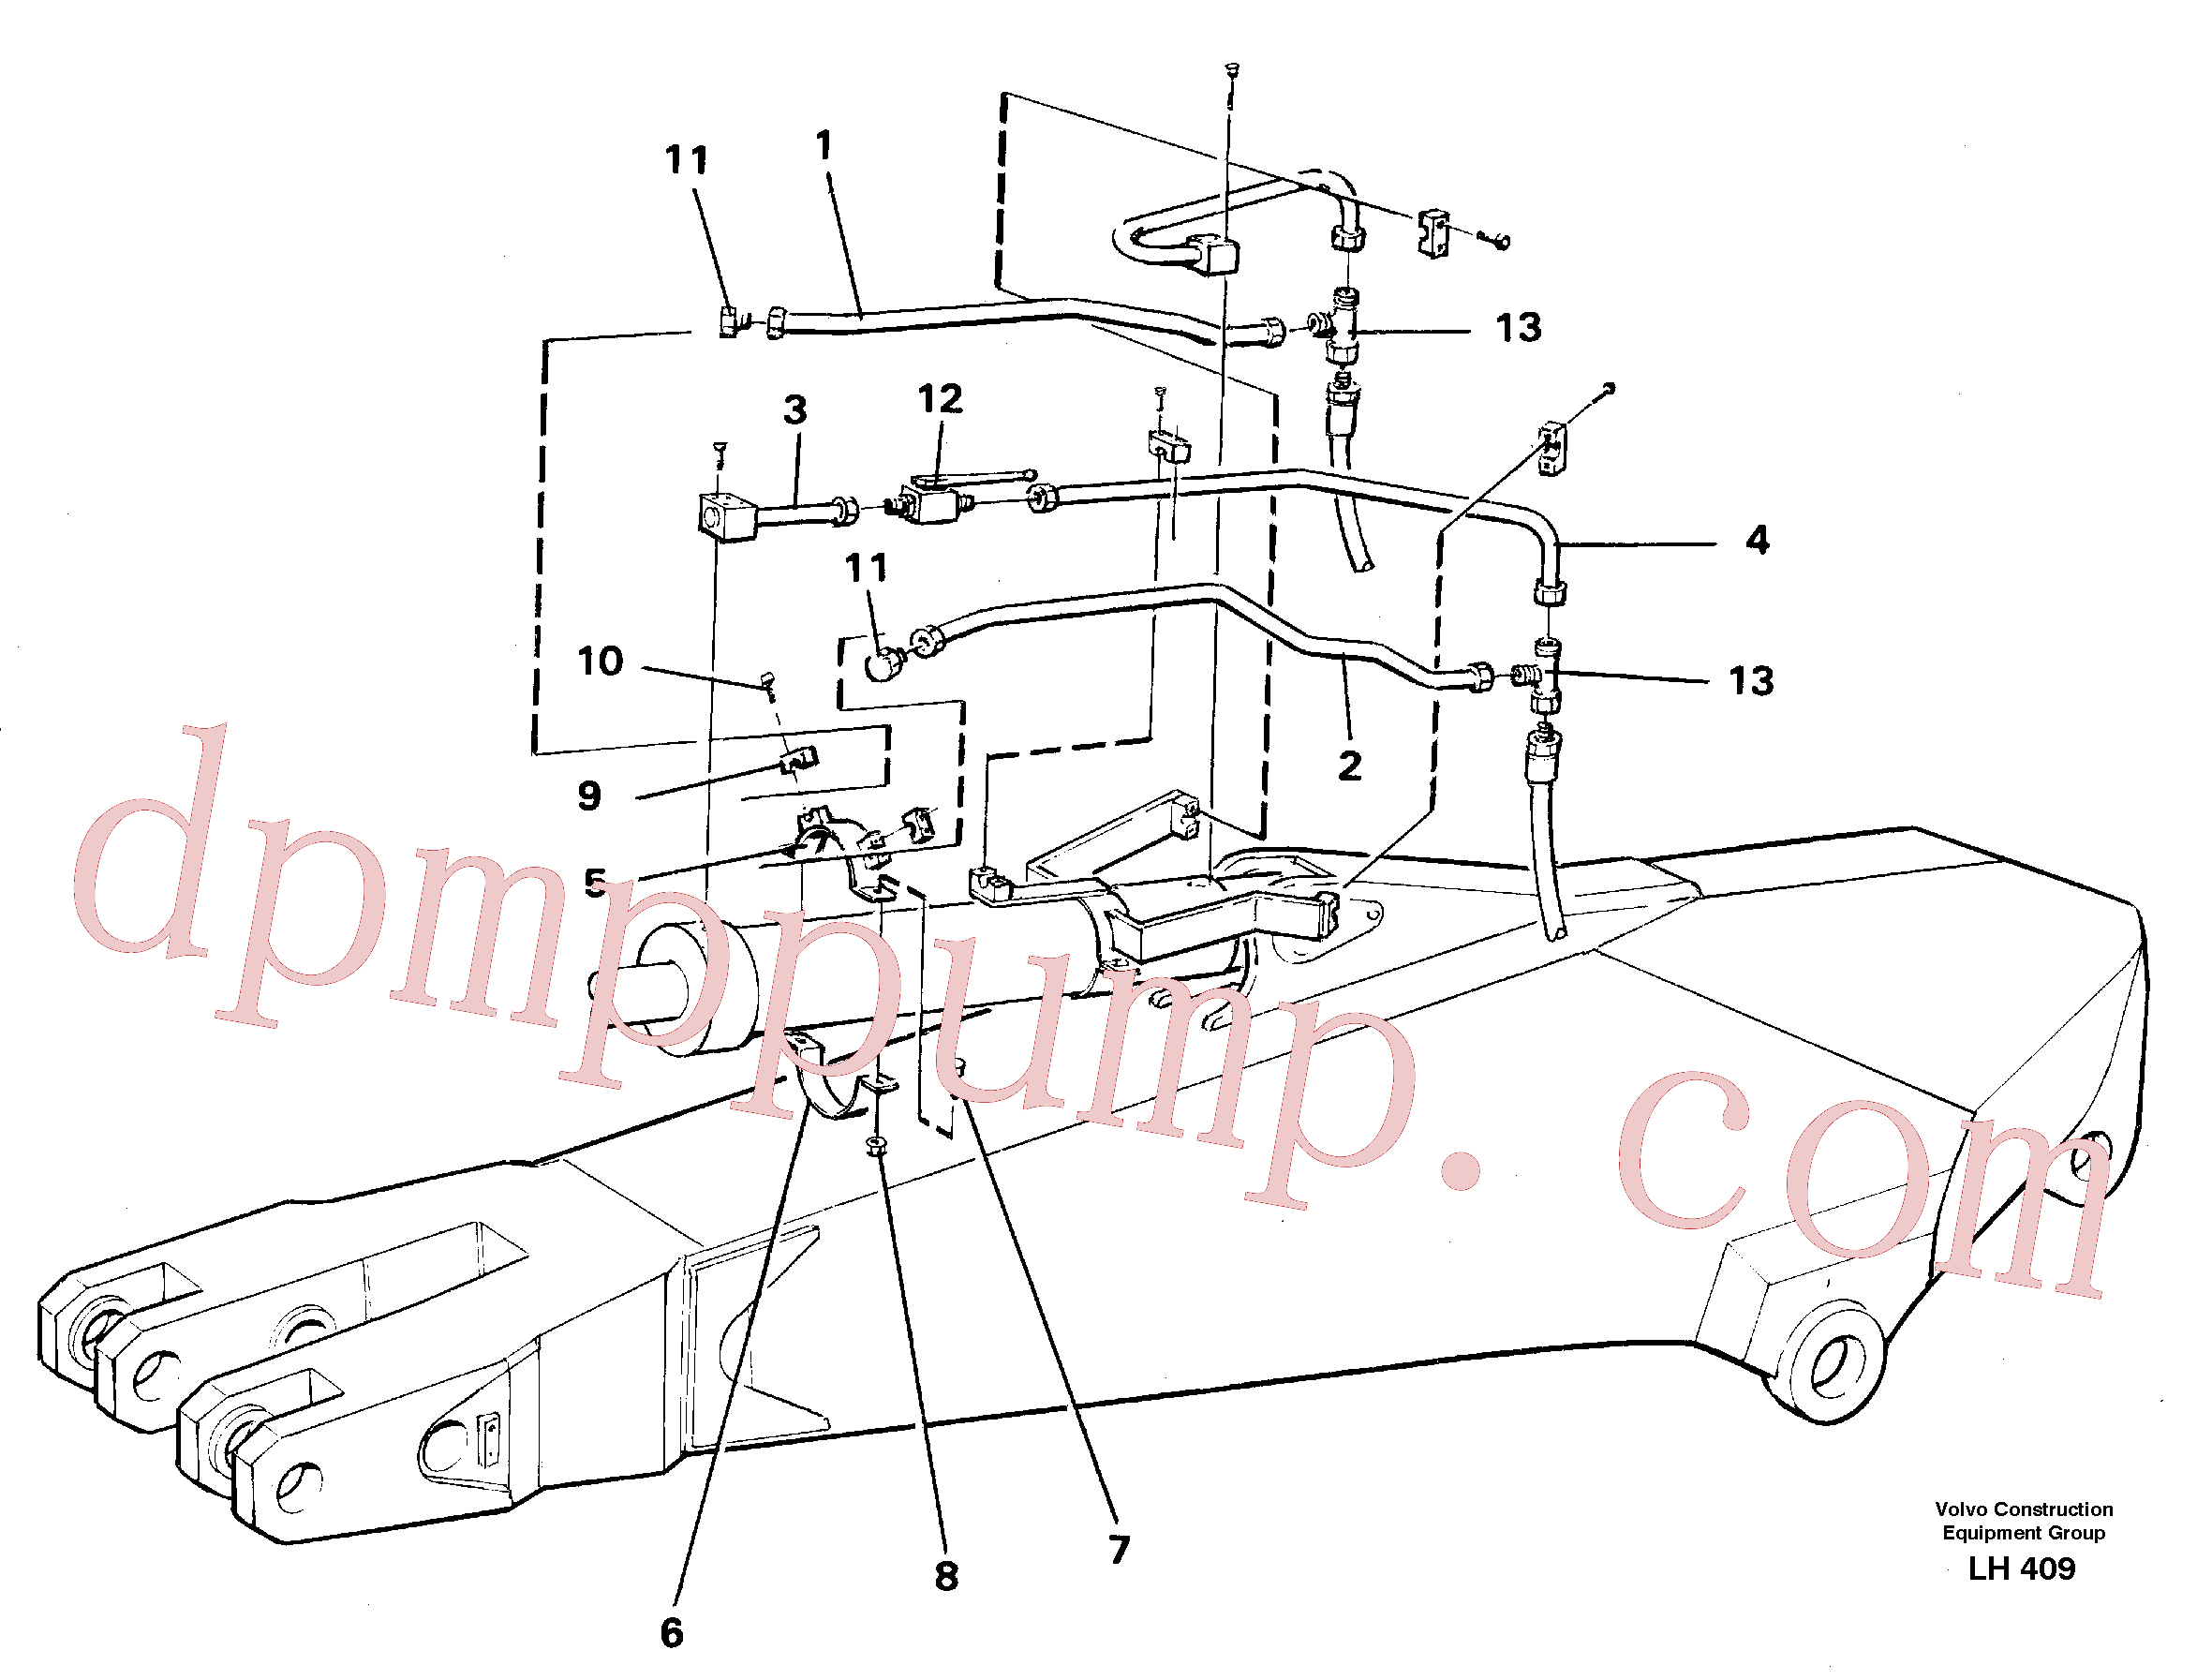 VOE14249978 for Volvo Parallel connected grab hydraulics on dipper arm(LH409 assembly)